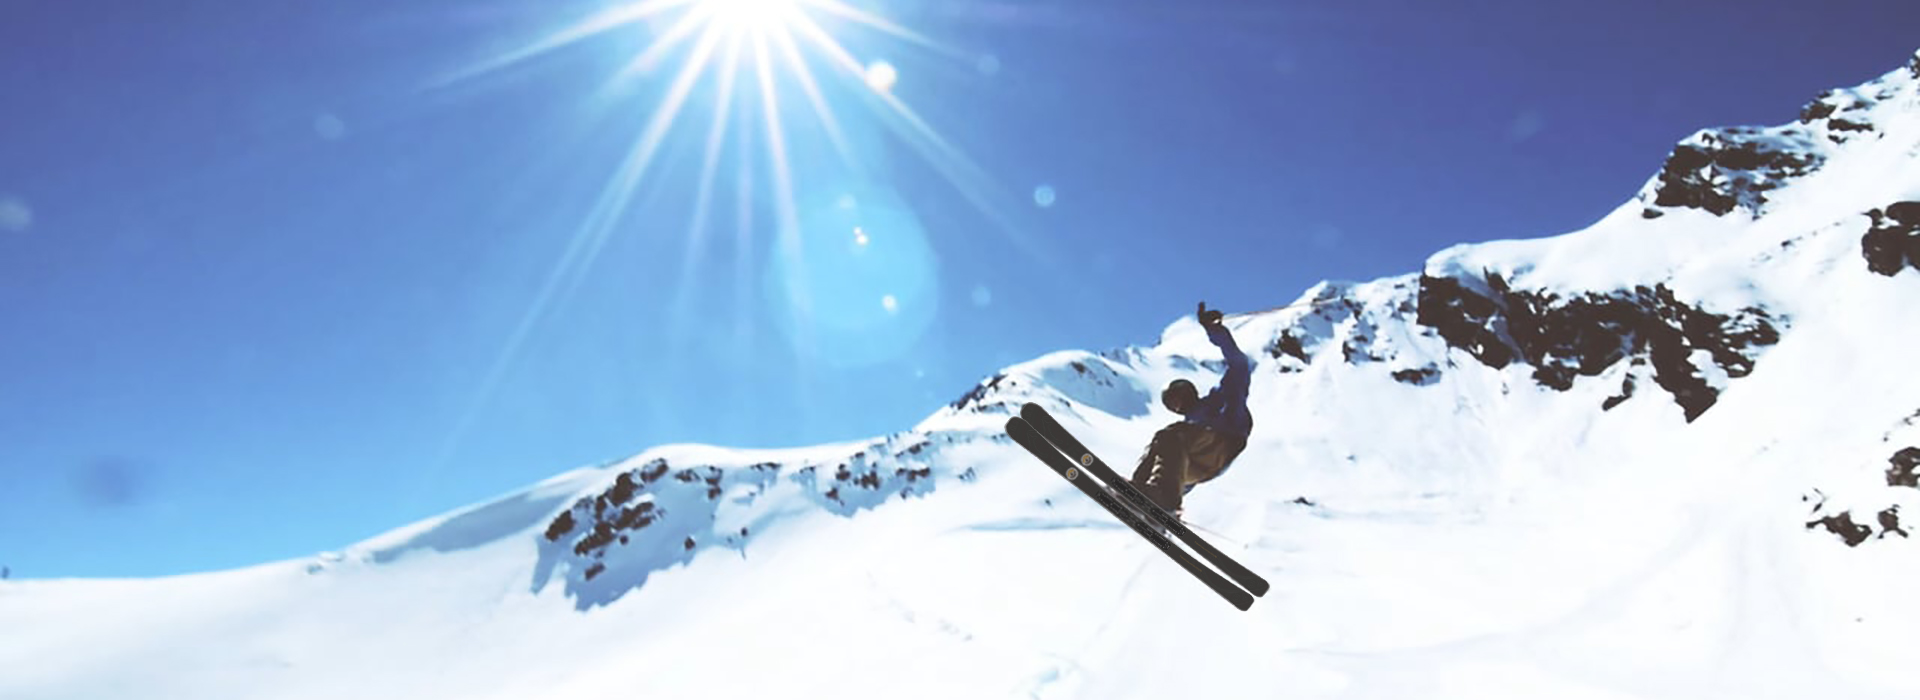 Backgroud skier Skipastory Ski Materiaal Speciaalzaak